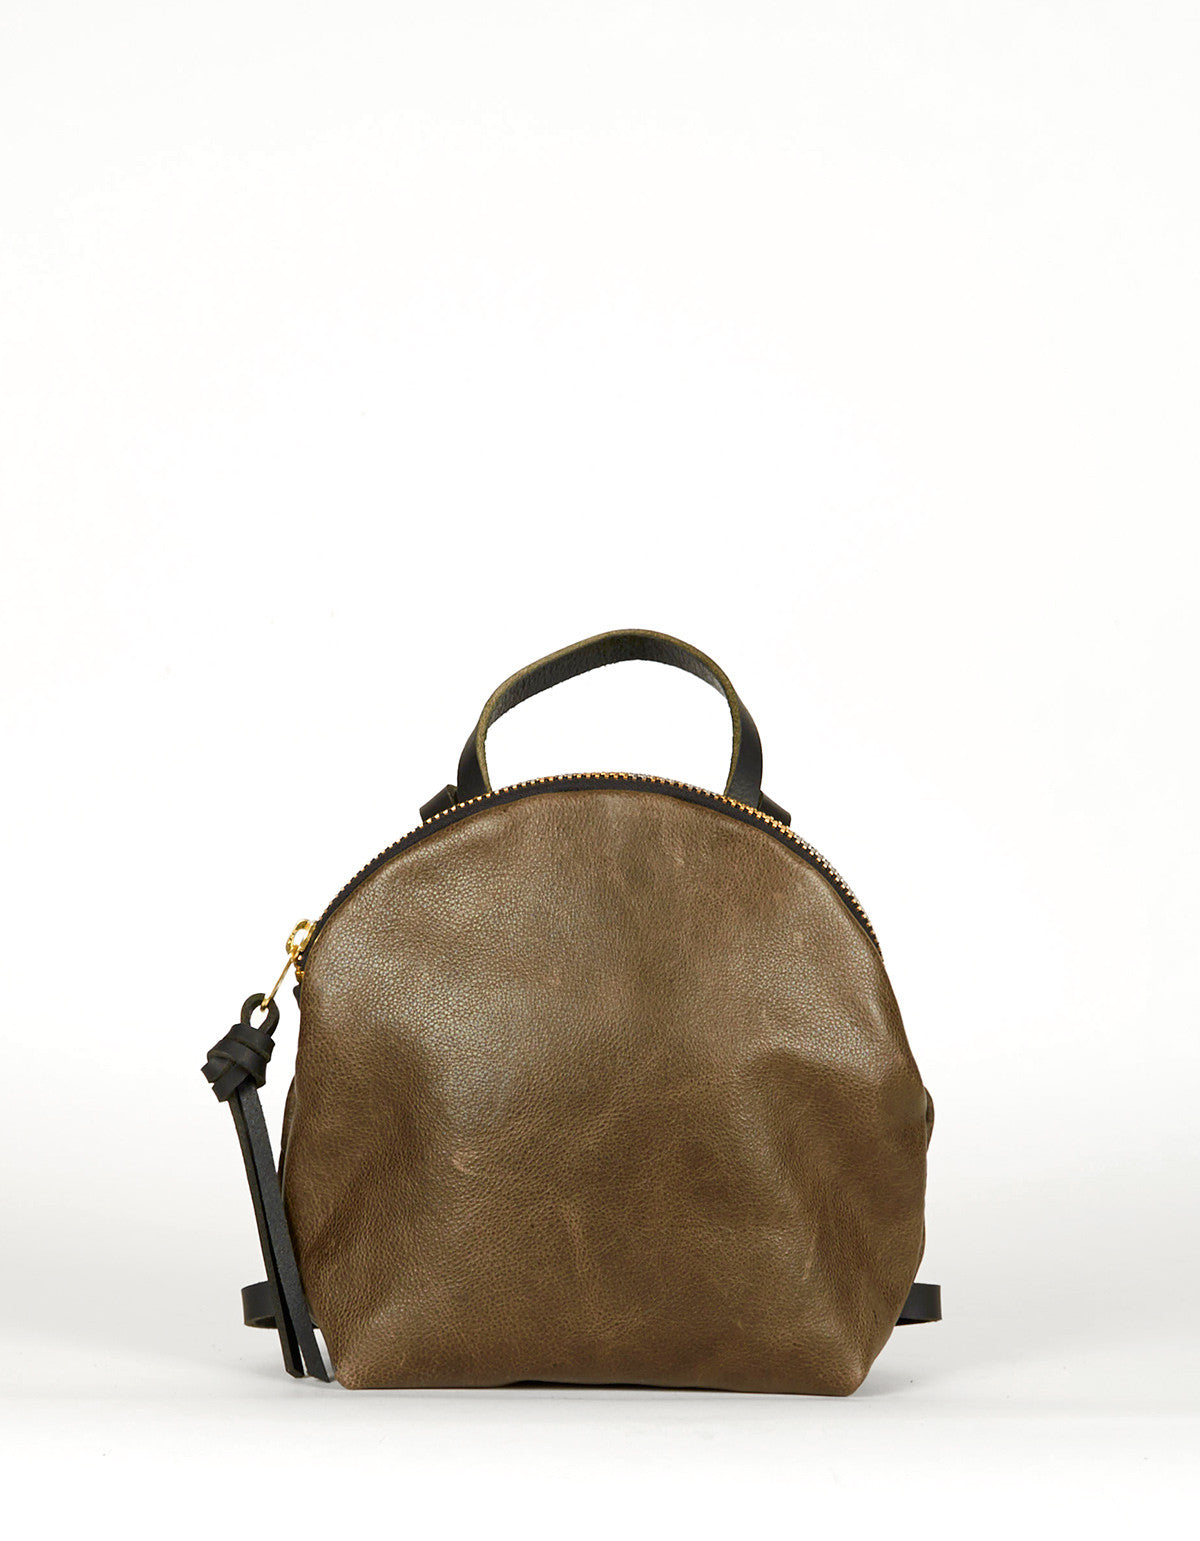 Eleven Thirty Anni Mini Backpack Steel - Still Life - 1